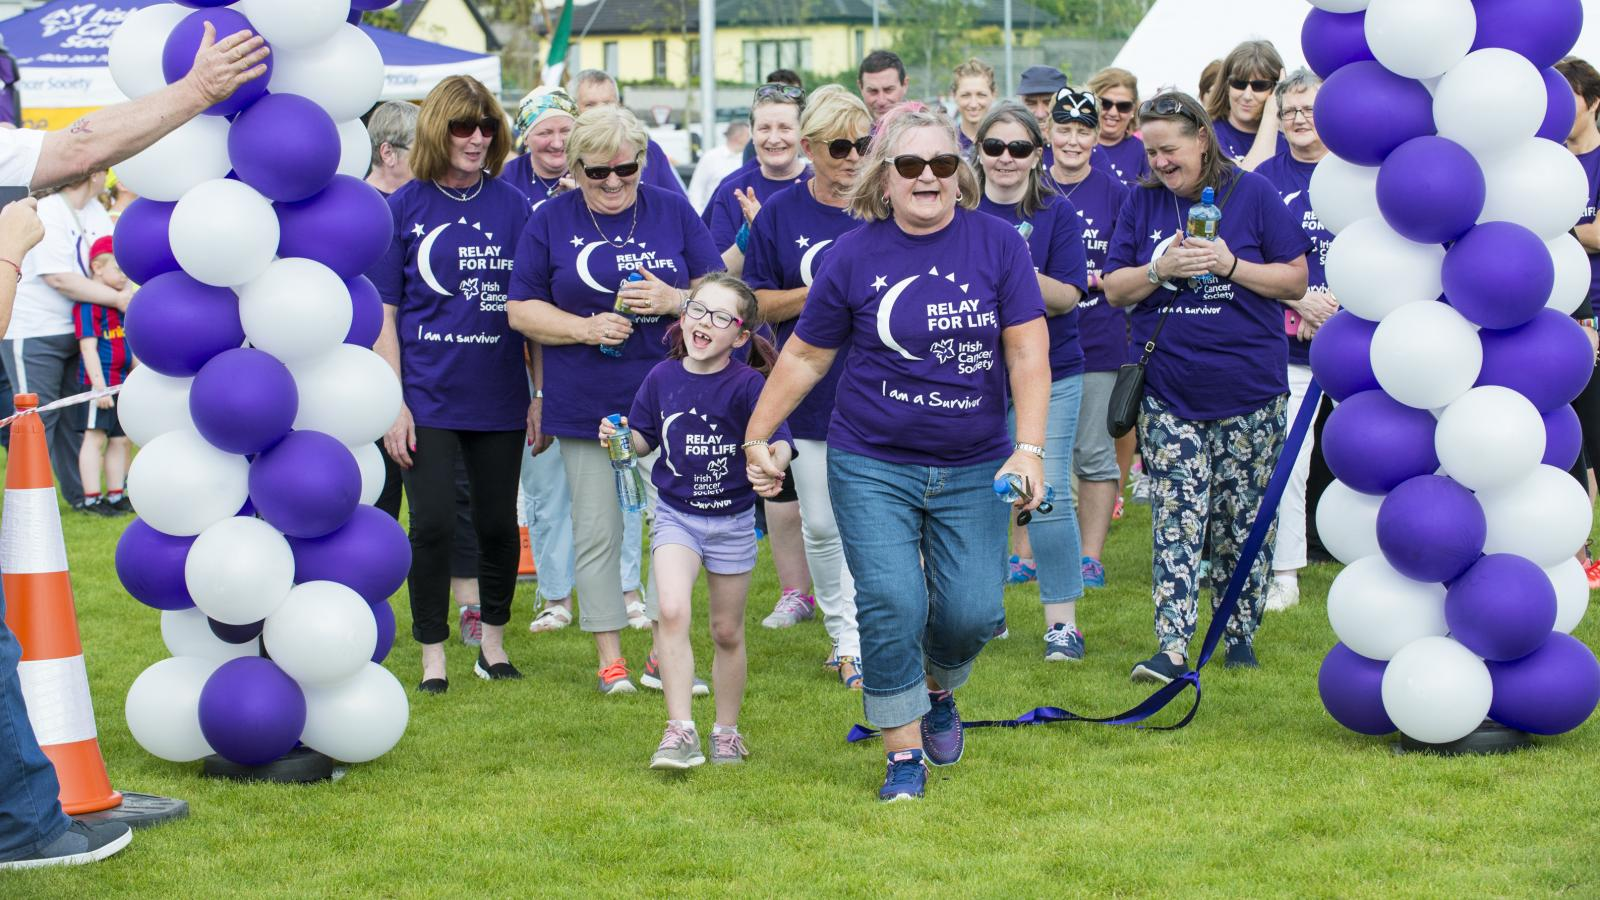 Cancer survivors walking at Relay For Life Midleton